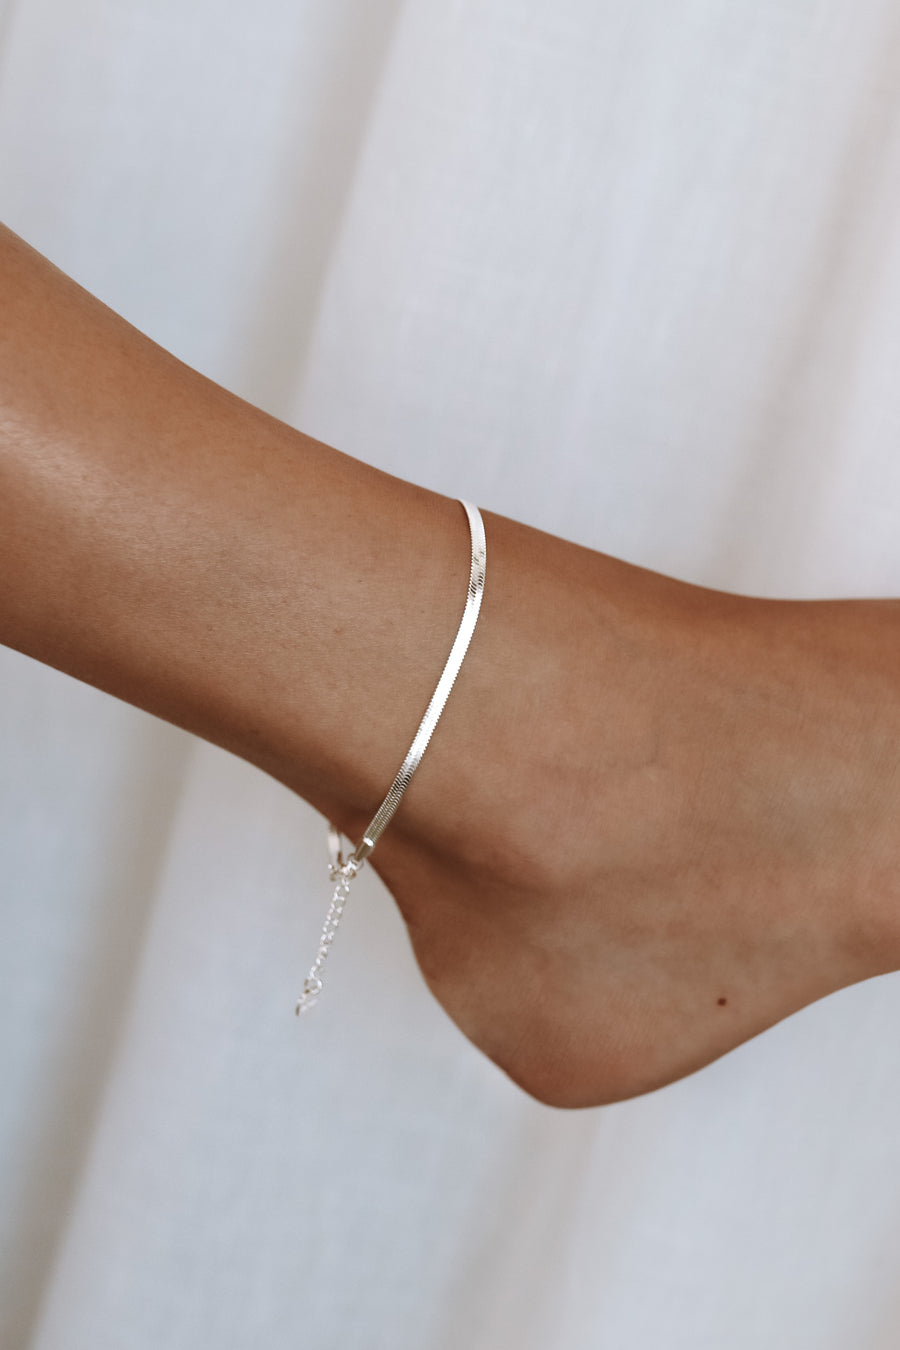 Aleera - 14ct Gold or Silver Plated Anklet